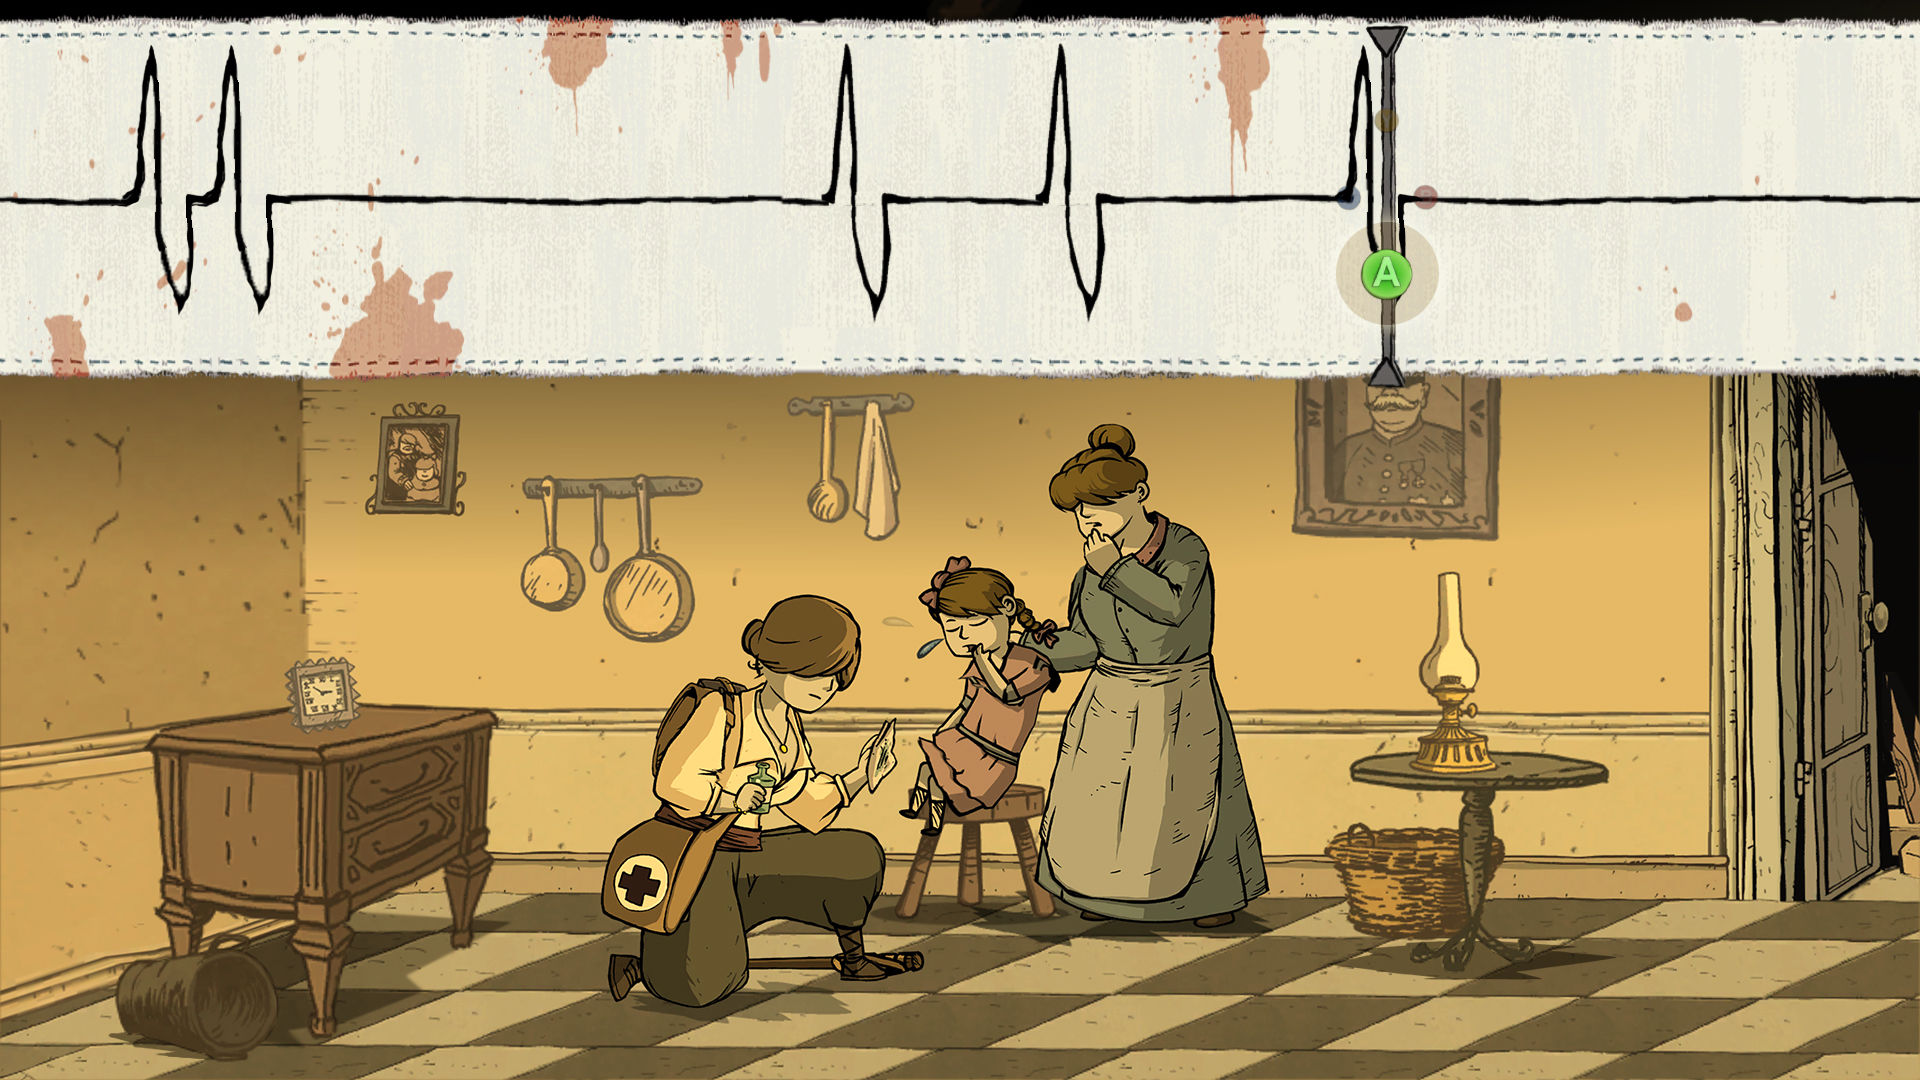 Valiant Hearts QTEs